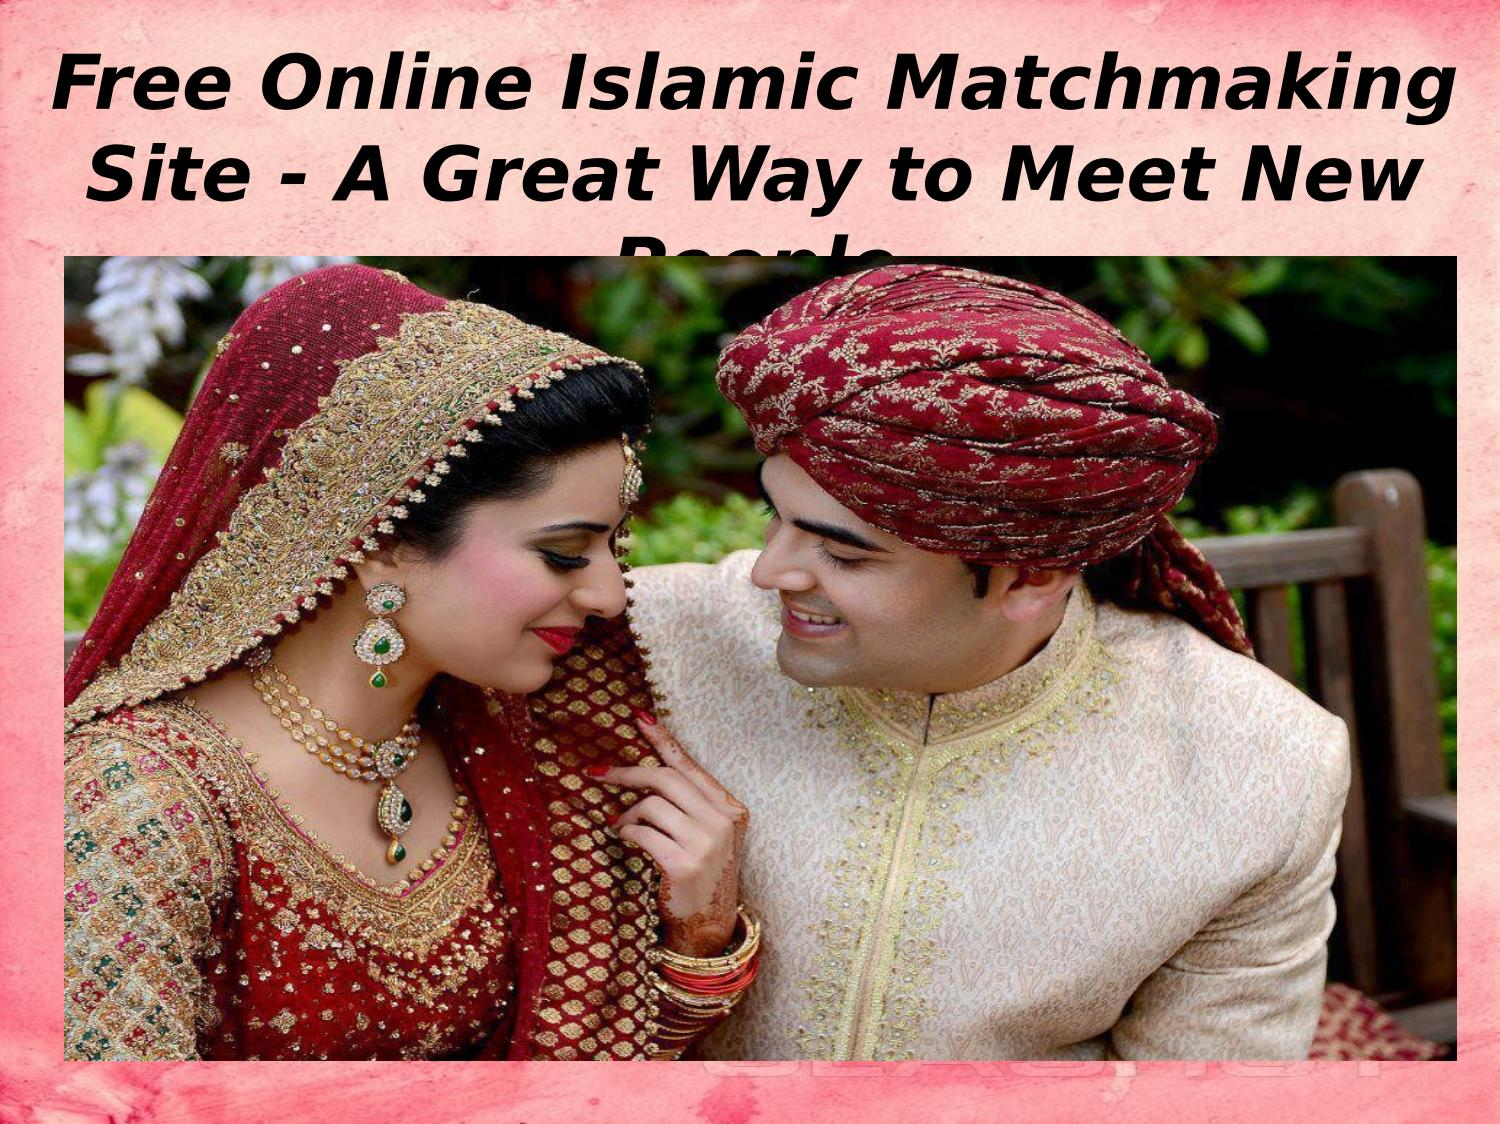 Ismaili dating site